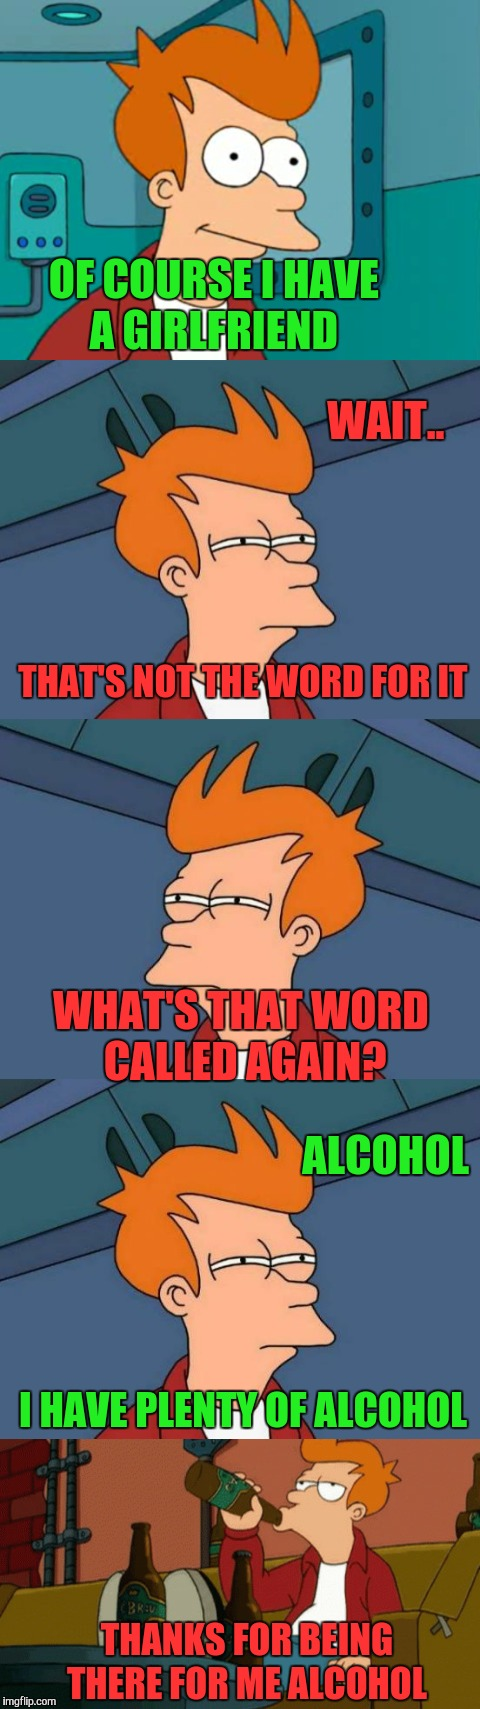 Futurama Fry thinking  | OF COURSE I HAVE A GIRLFRIEND THANKS FOR BEING THERE FOR ME ALCOHOL WAIT.. THAT'S NOT THE WORD FOR IT WHAT'S THAT WORD CALLED AGAIN? ALCOHOL | image tagged in memes,funny,alcohol,futurama fry,forever alone,not sure if | made w/ Imgflip meme maker